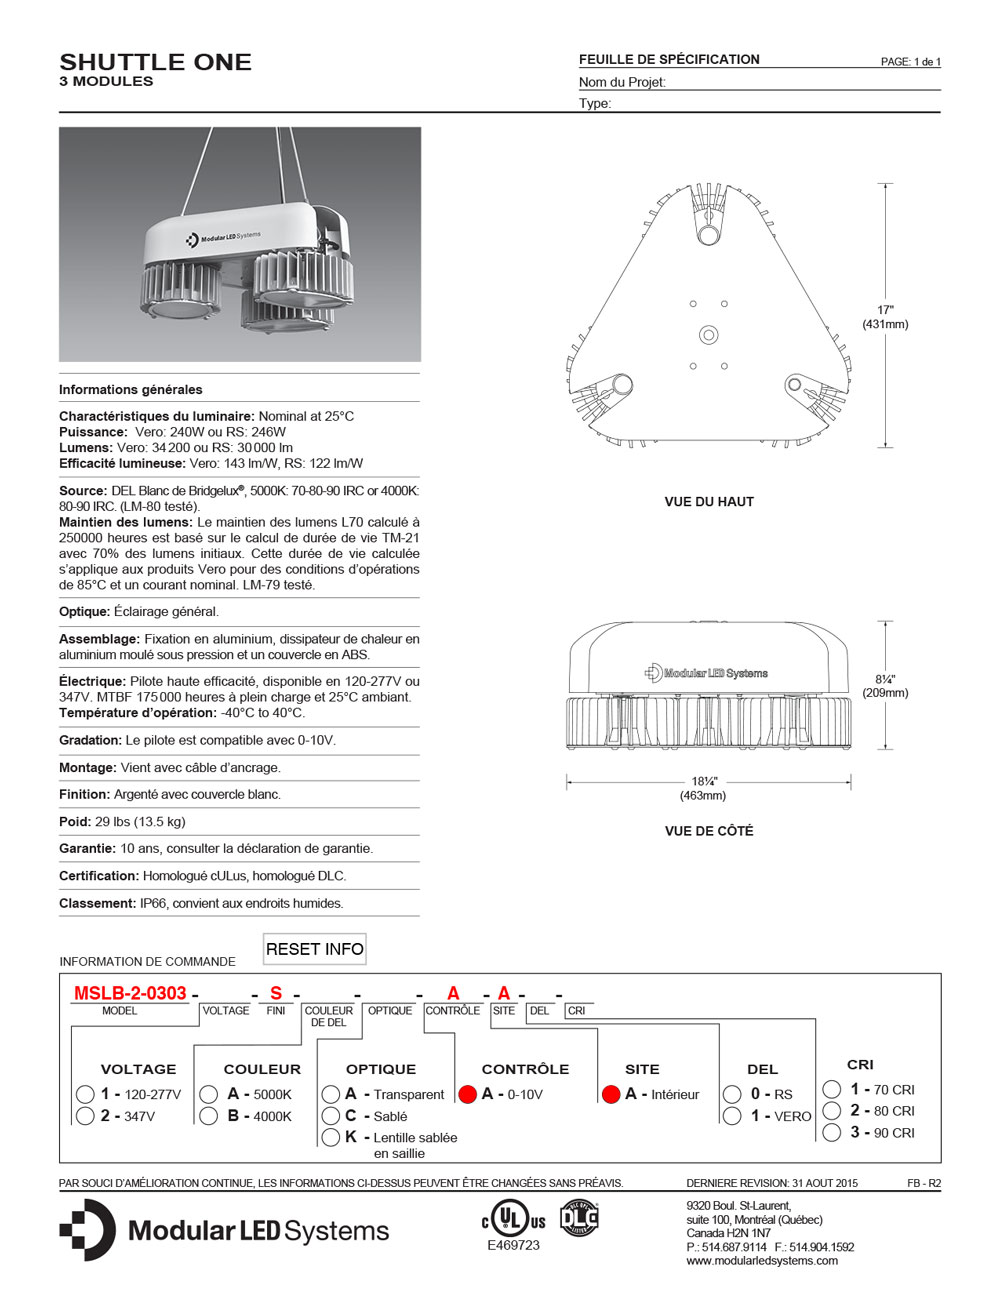 shuttle-one-3-modules_specifications